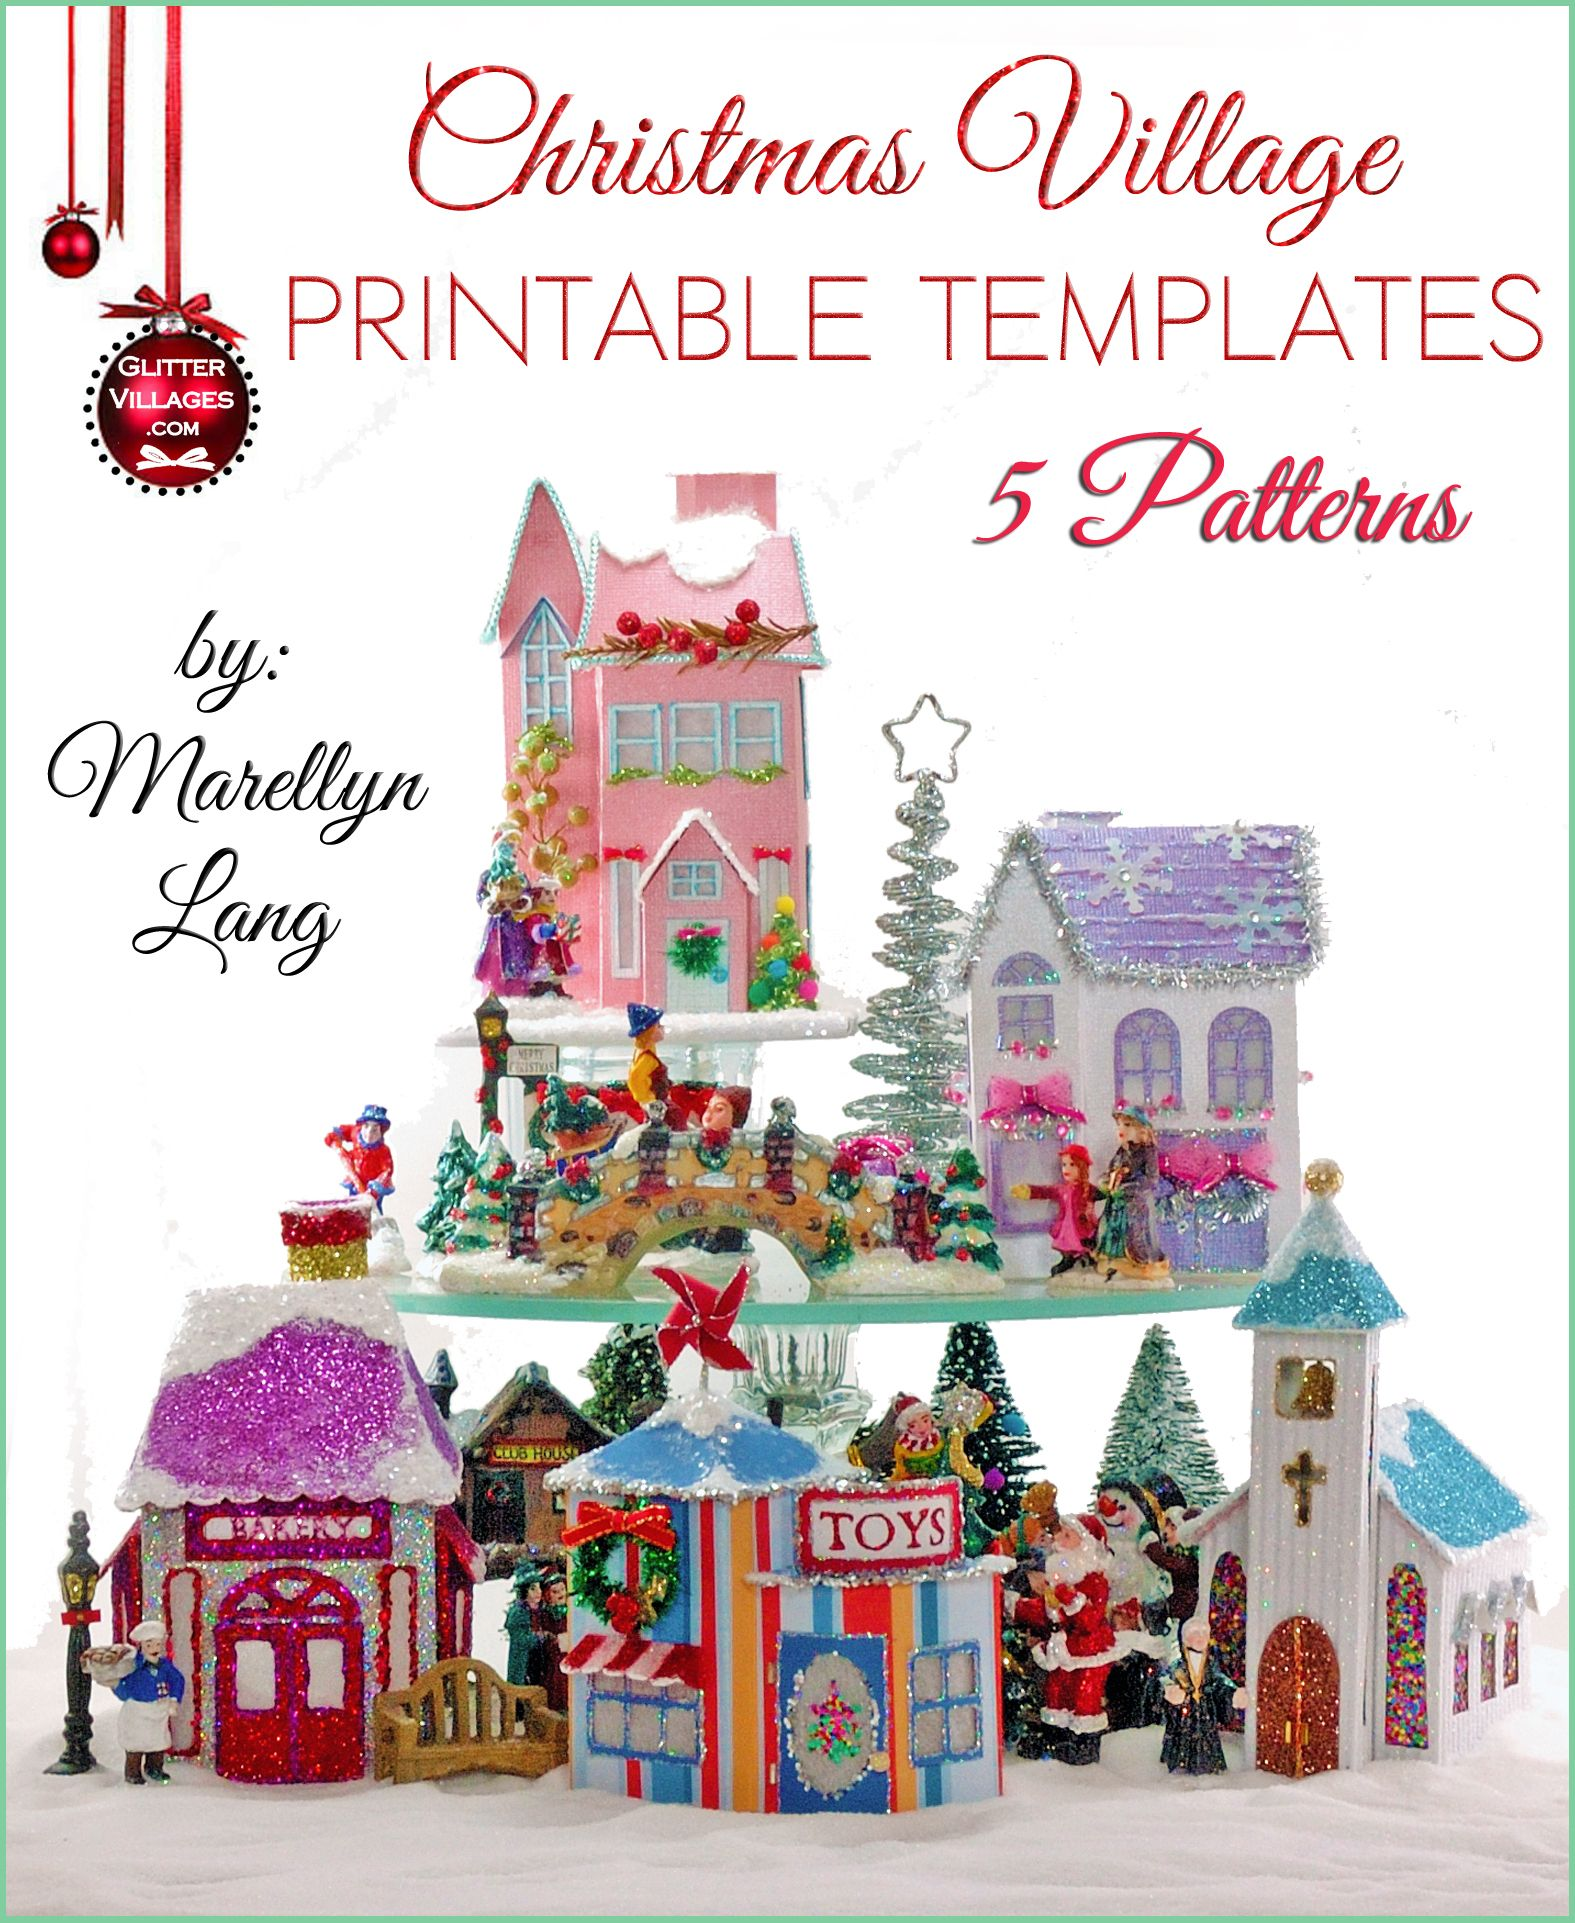 image about Printable Christmas Village Template titled 5 Xmas Village home templates toward print. Do it yourself with paper